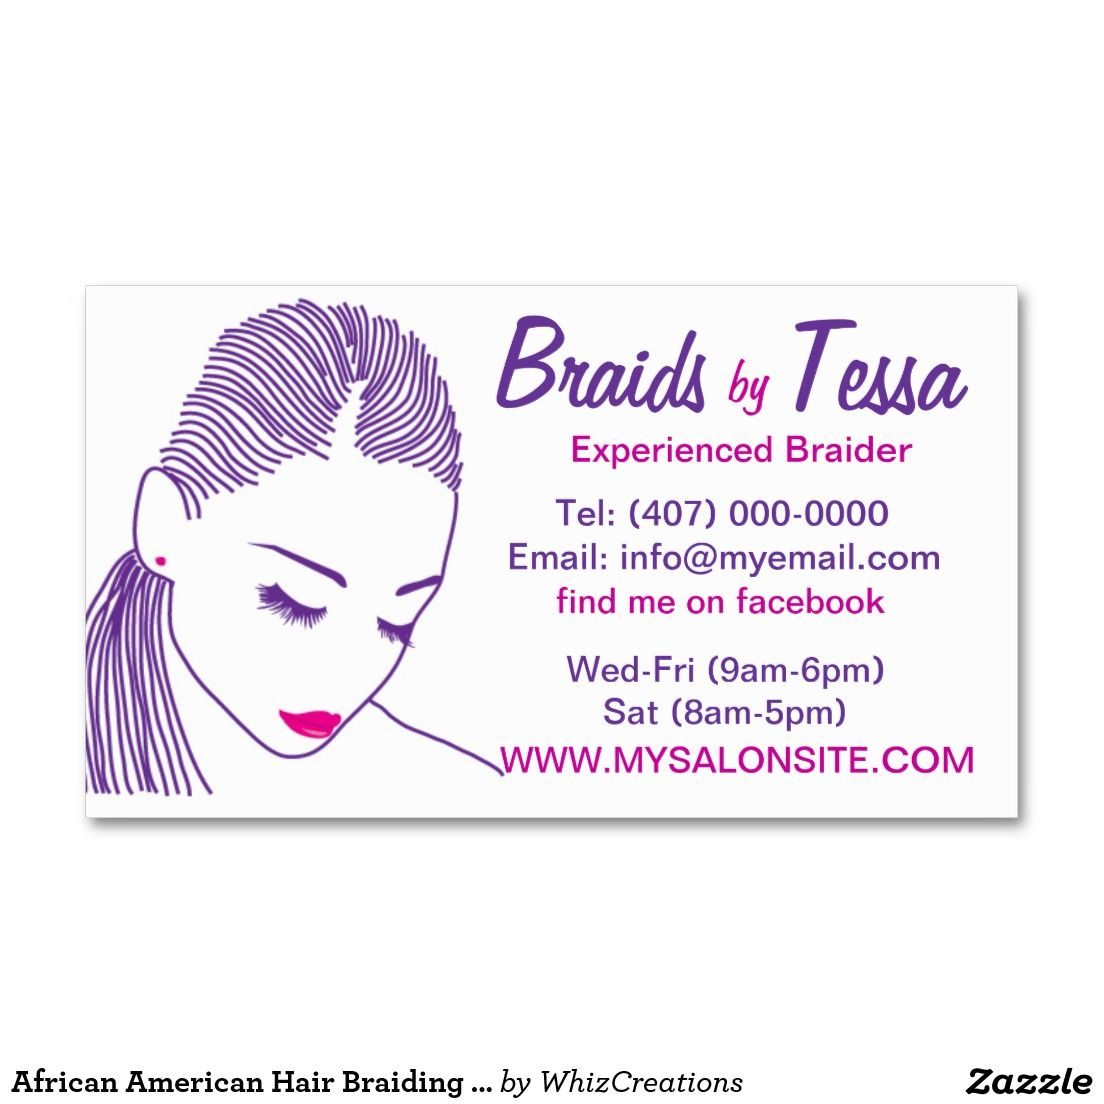 African American Hair Braiding Salon Business Card | Business Cards ...